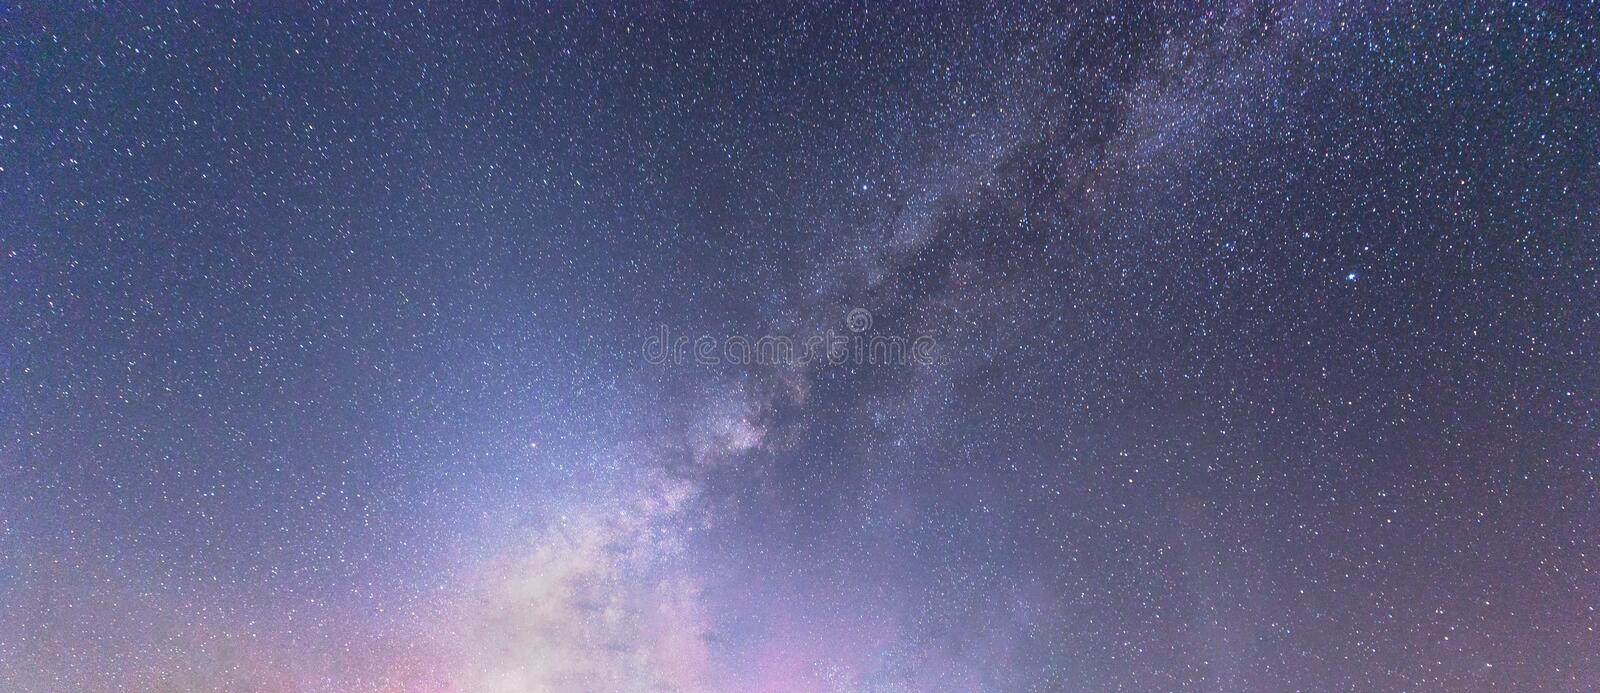 Milky way galaxy with stars at night sky and universe space background. Astronomy of twinkling stars and planets royalty free stock images